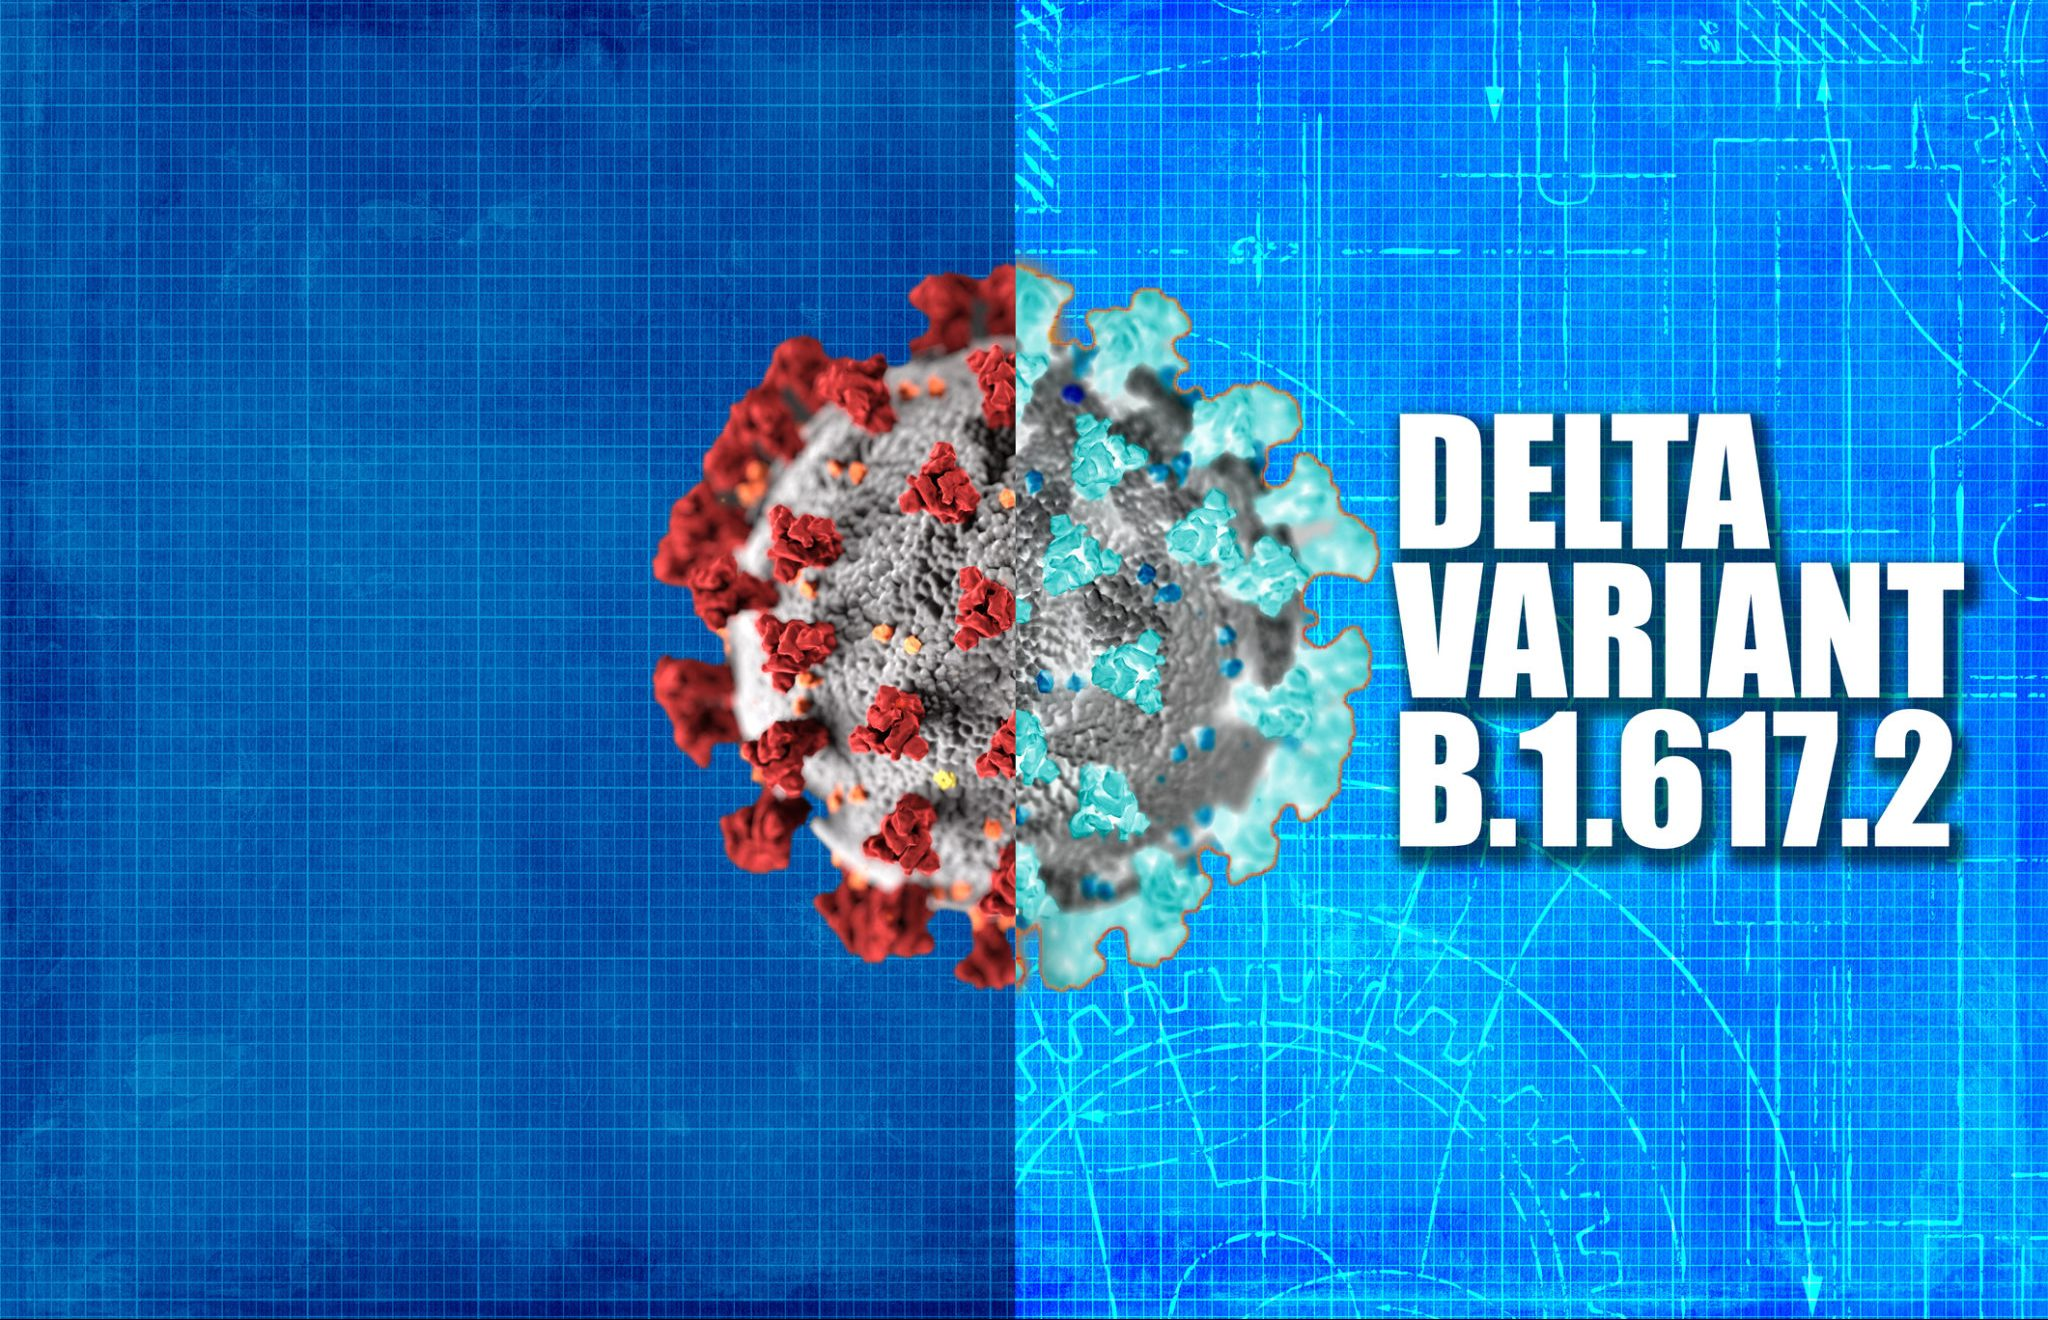 Delta variant carries 300 times more viral load